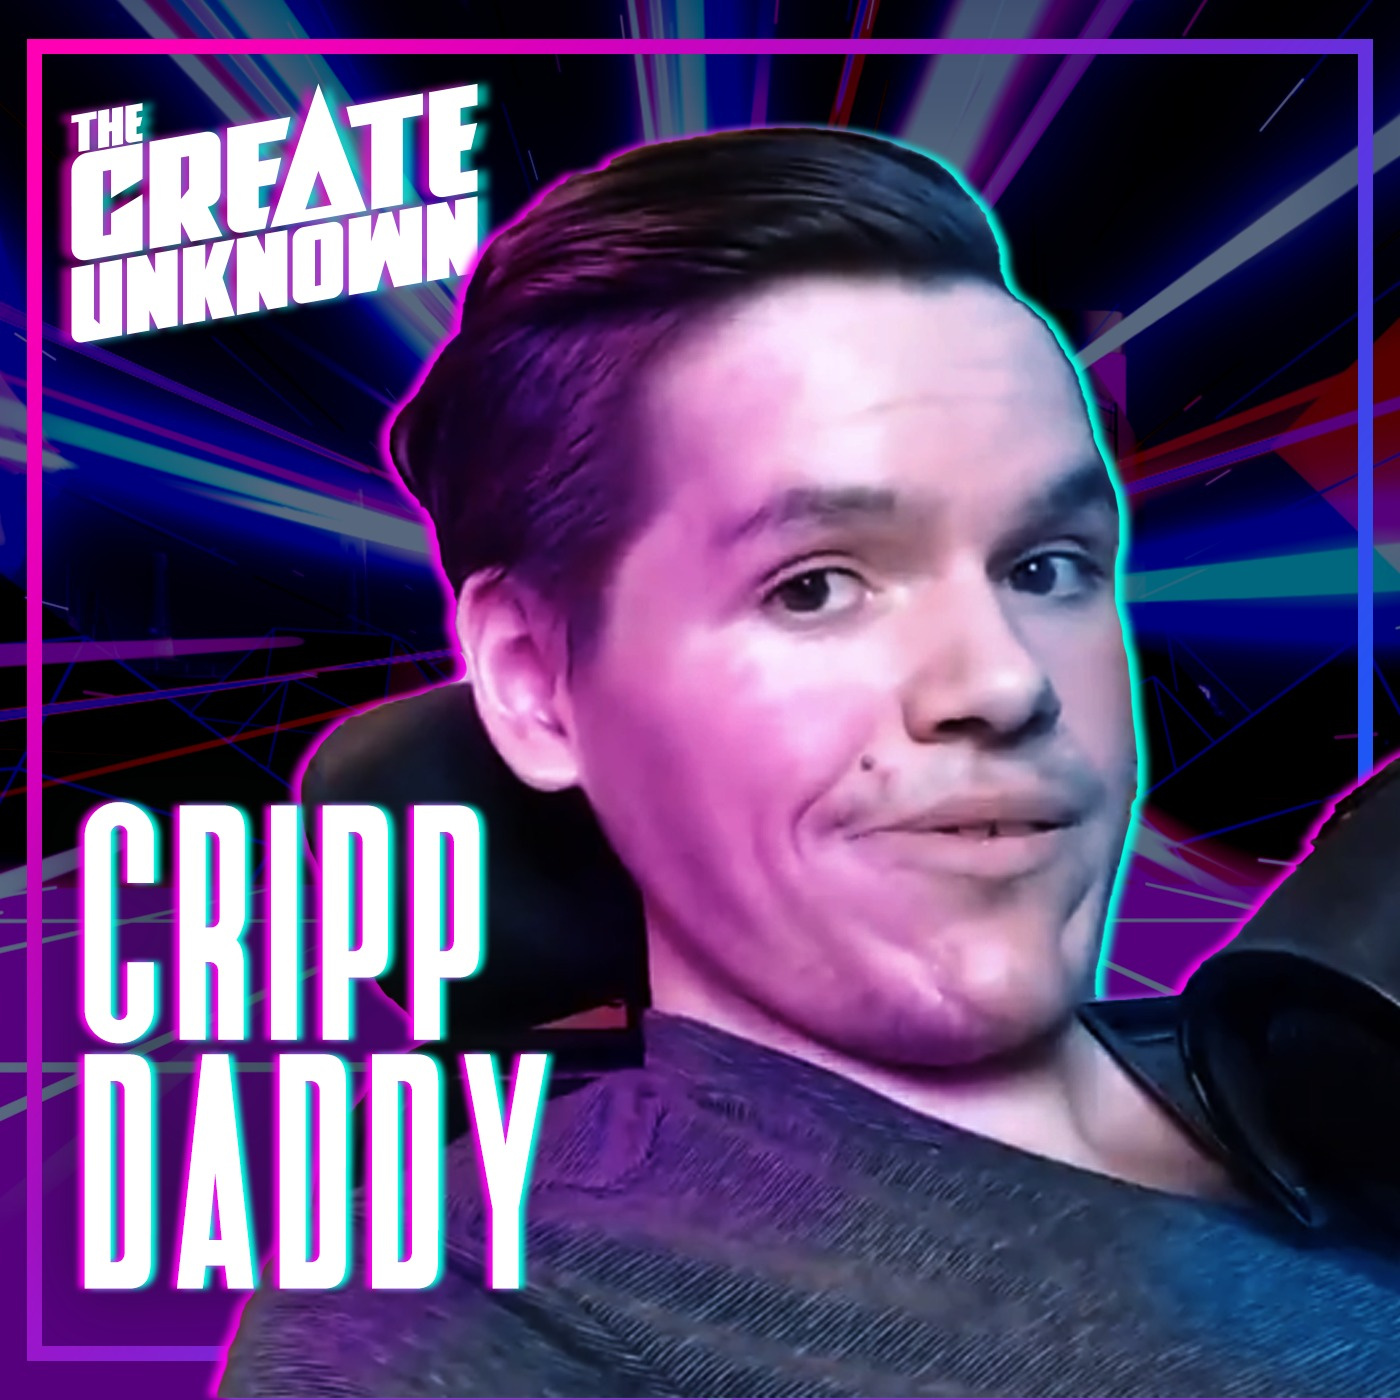 CrippDaddy enters The Create Unknown